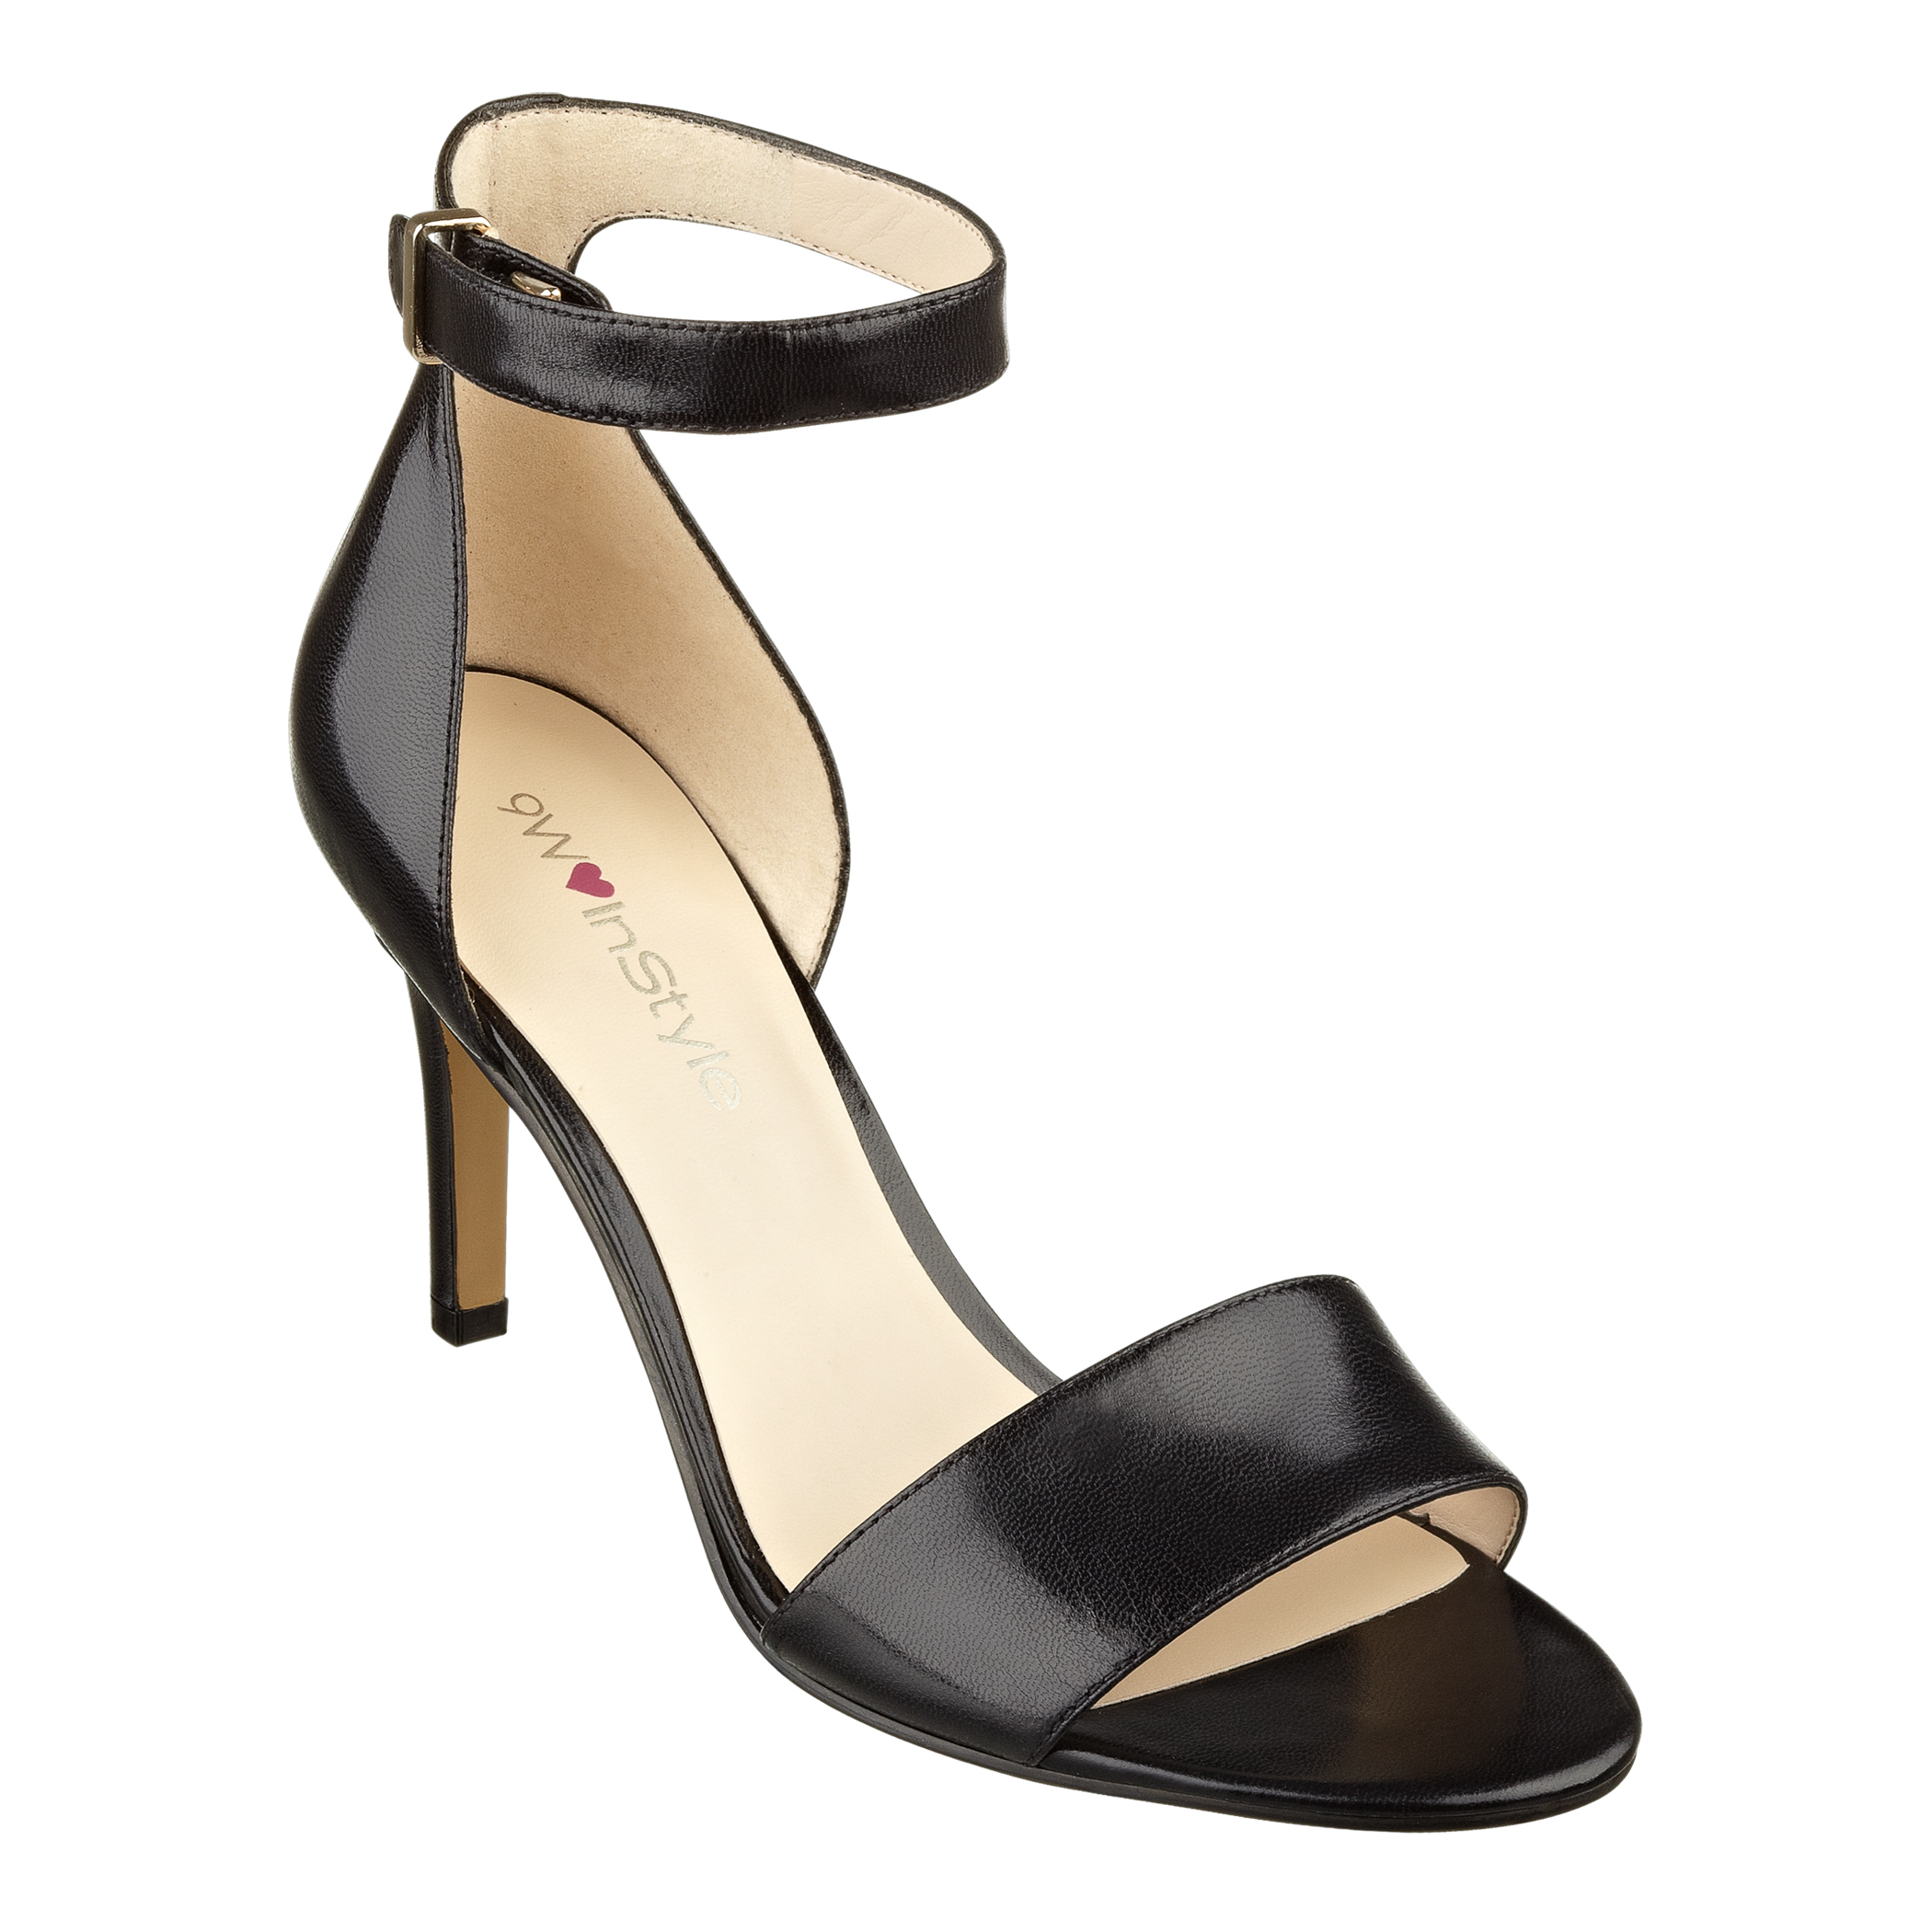 Comfort Shoes For Women Available In Retail Stores